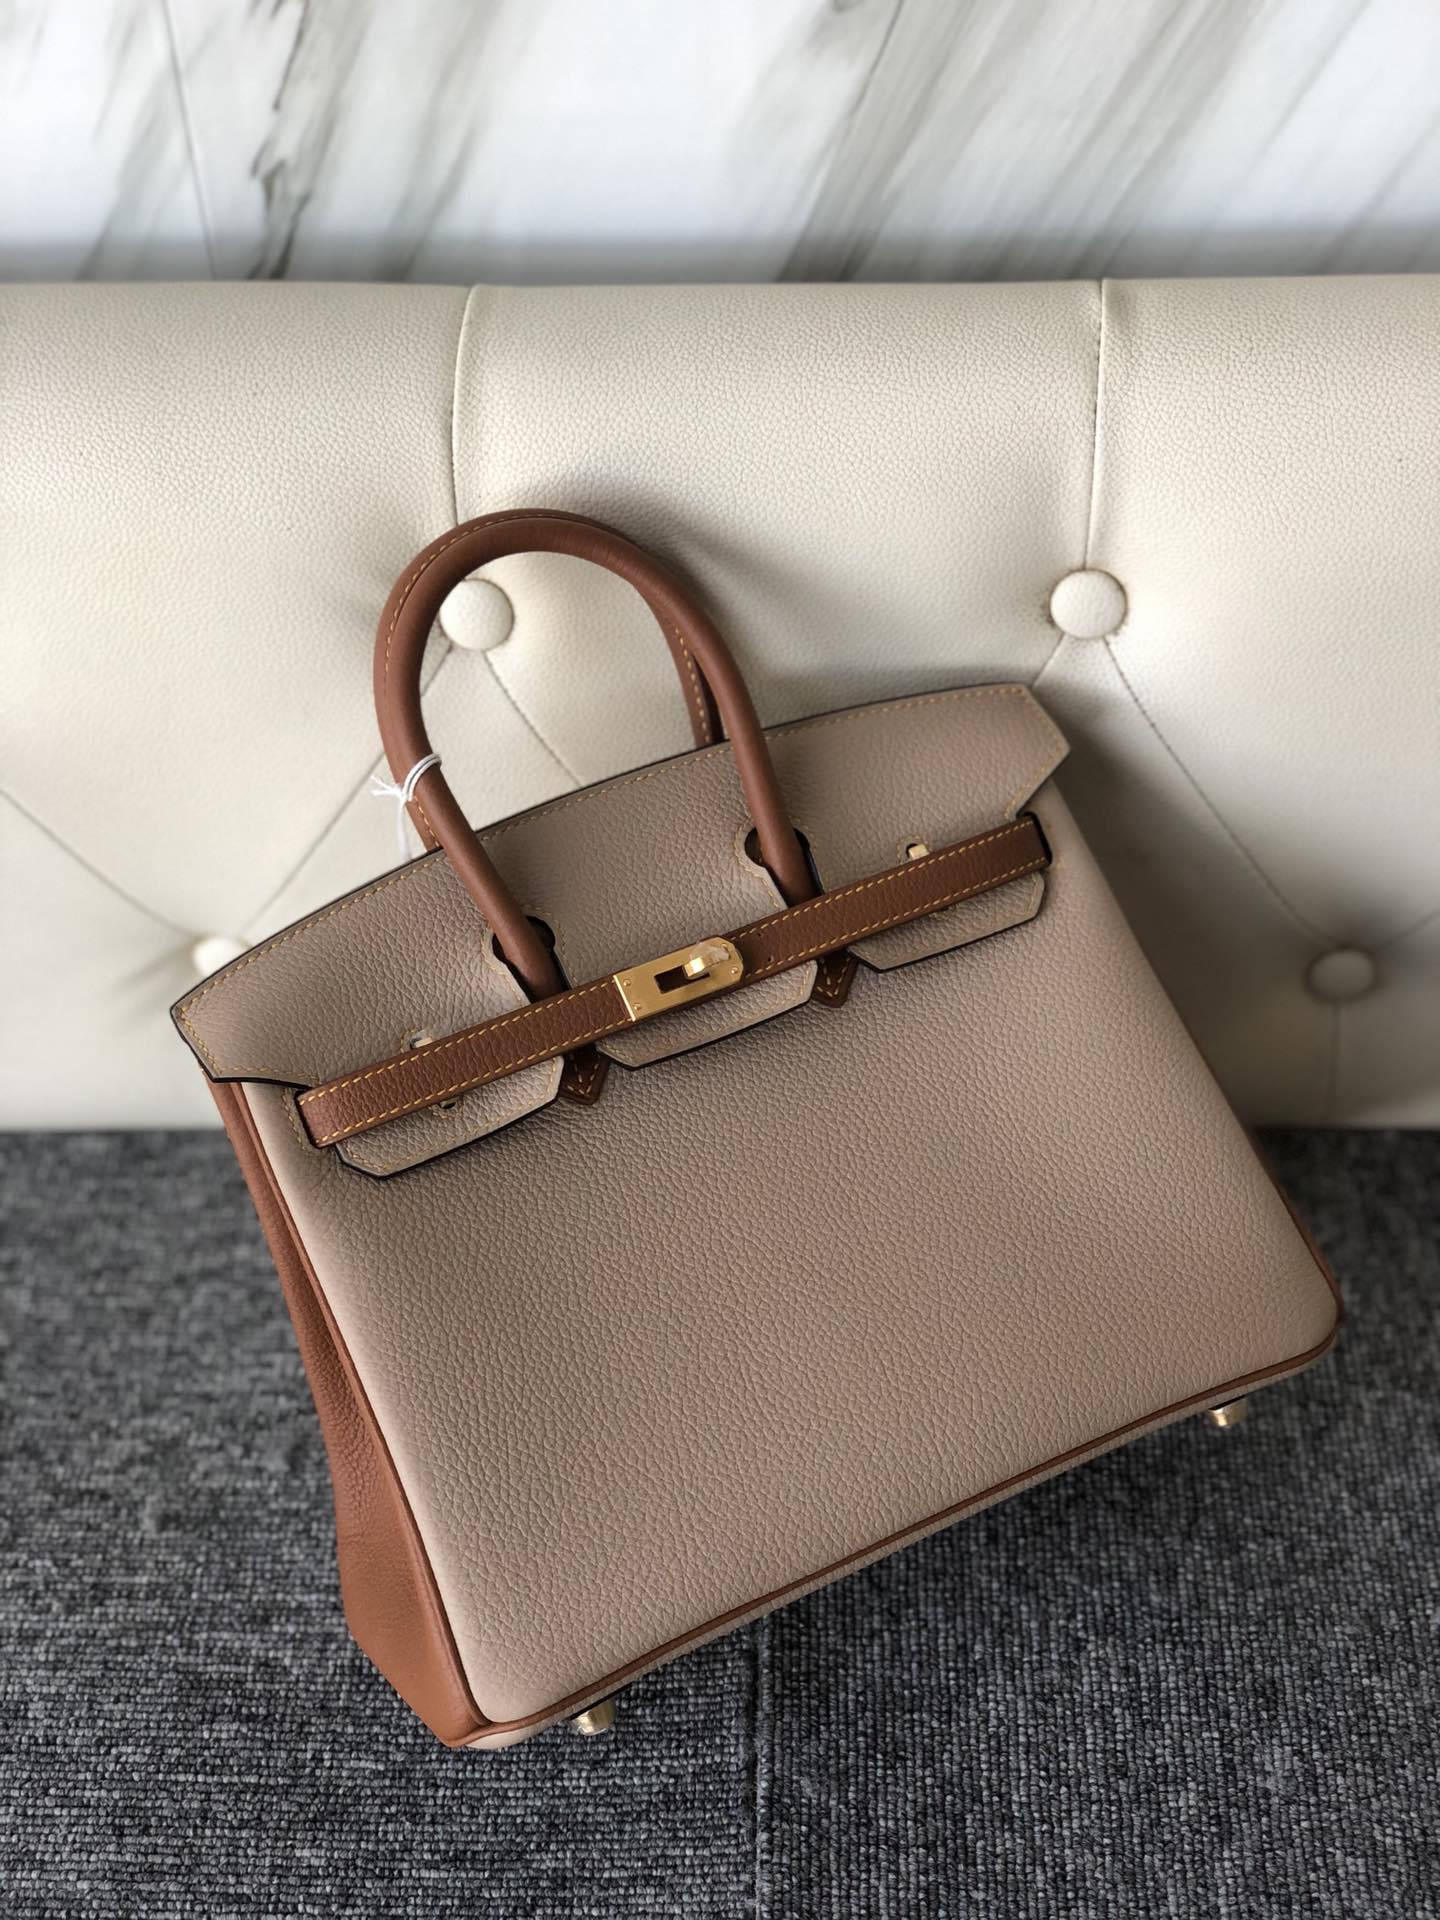 Customize Hermes S2 Trench Gris/CK37 Gold Togo Birkin25cm Bag Gold Hardware